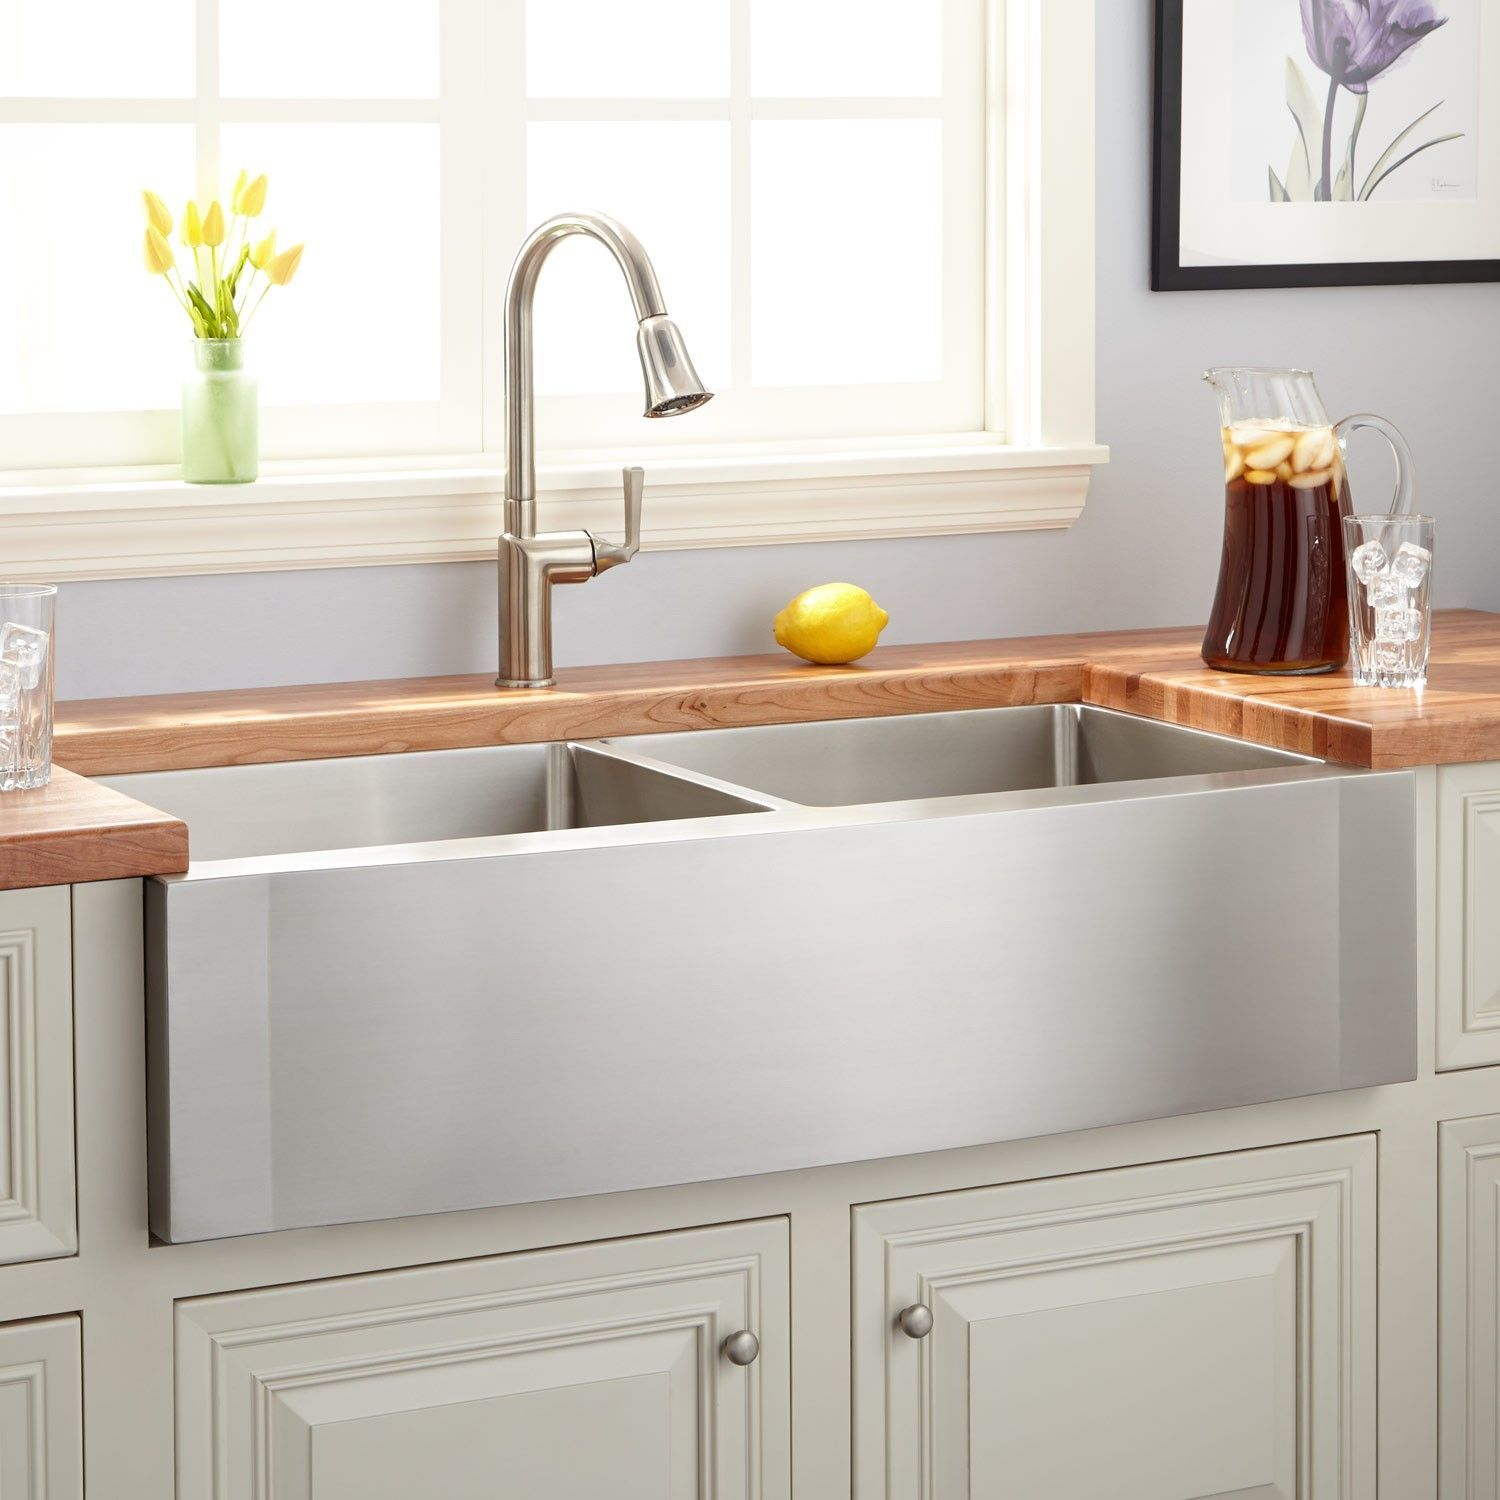 Kitchen Sinks Why Going With The Cheapest Is Not A Good Idea